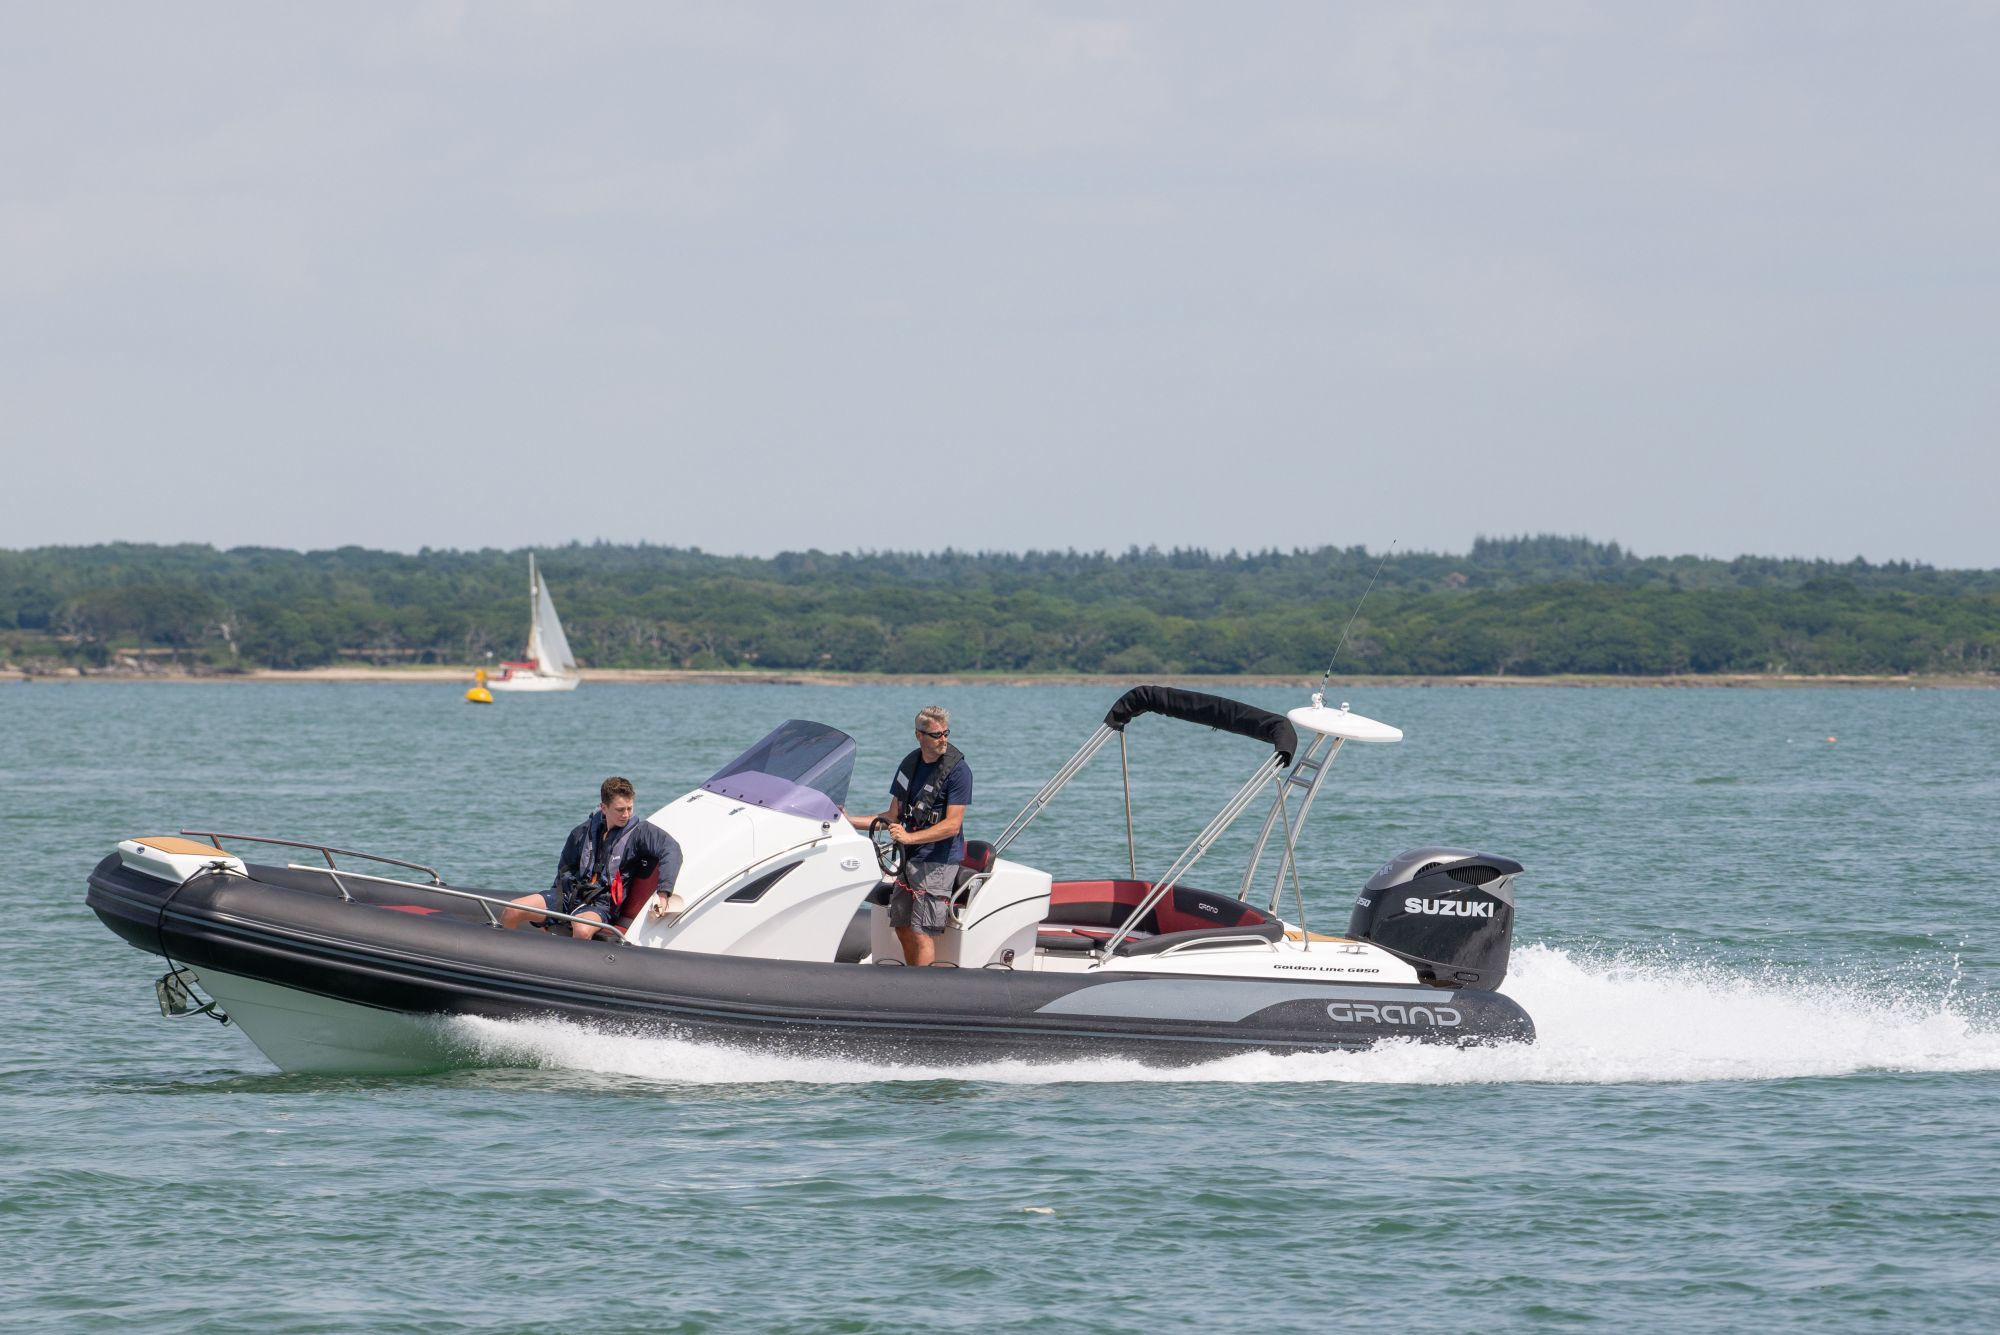 GRAND G850 RIB in The Solent